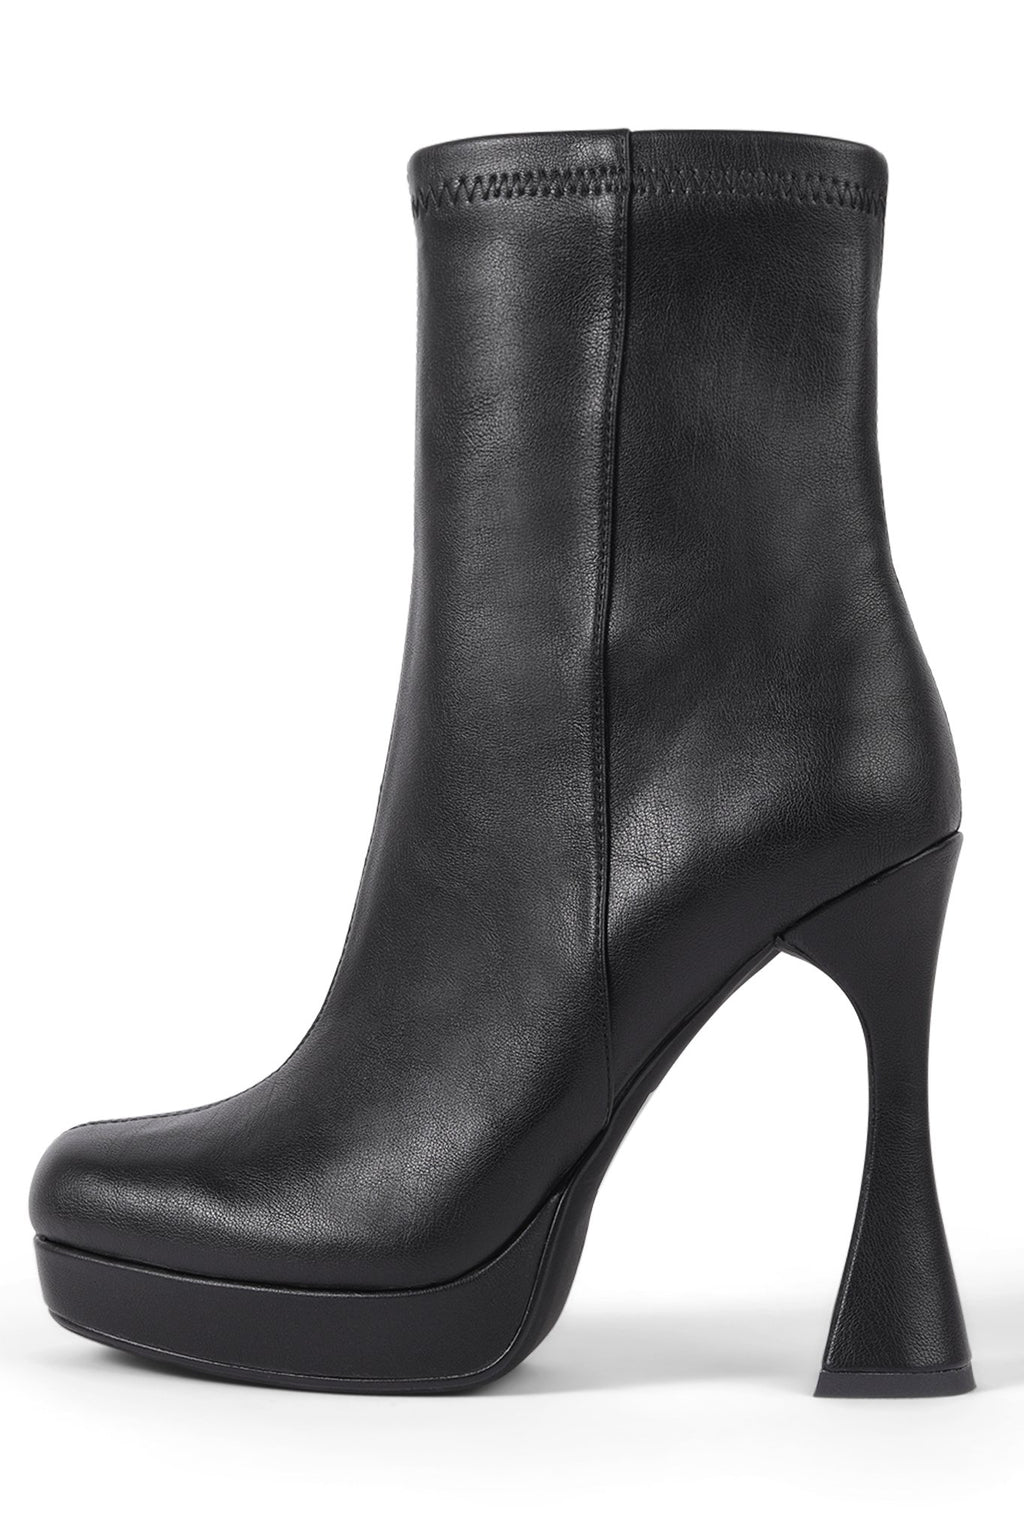 BEL-AIR Platform Boot STRATEGY Black 6